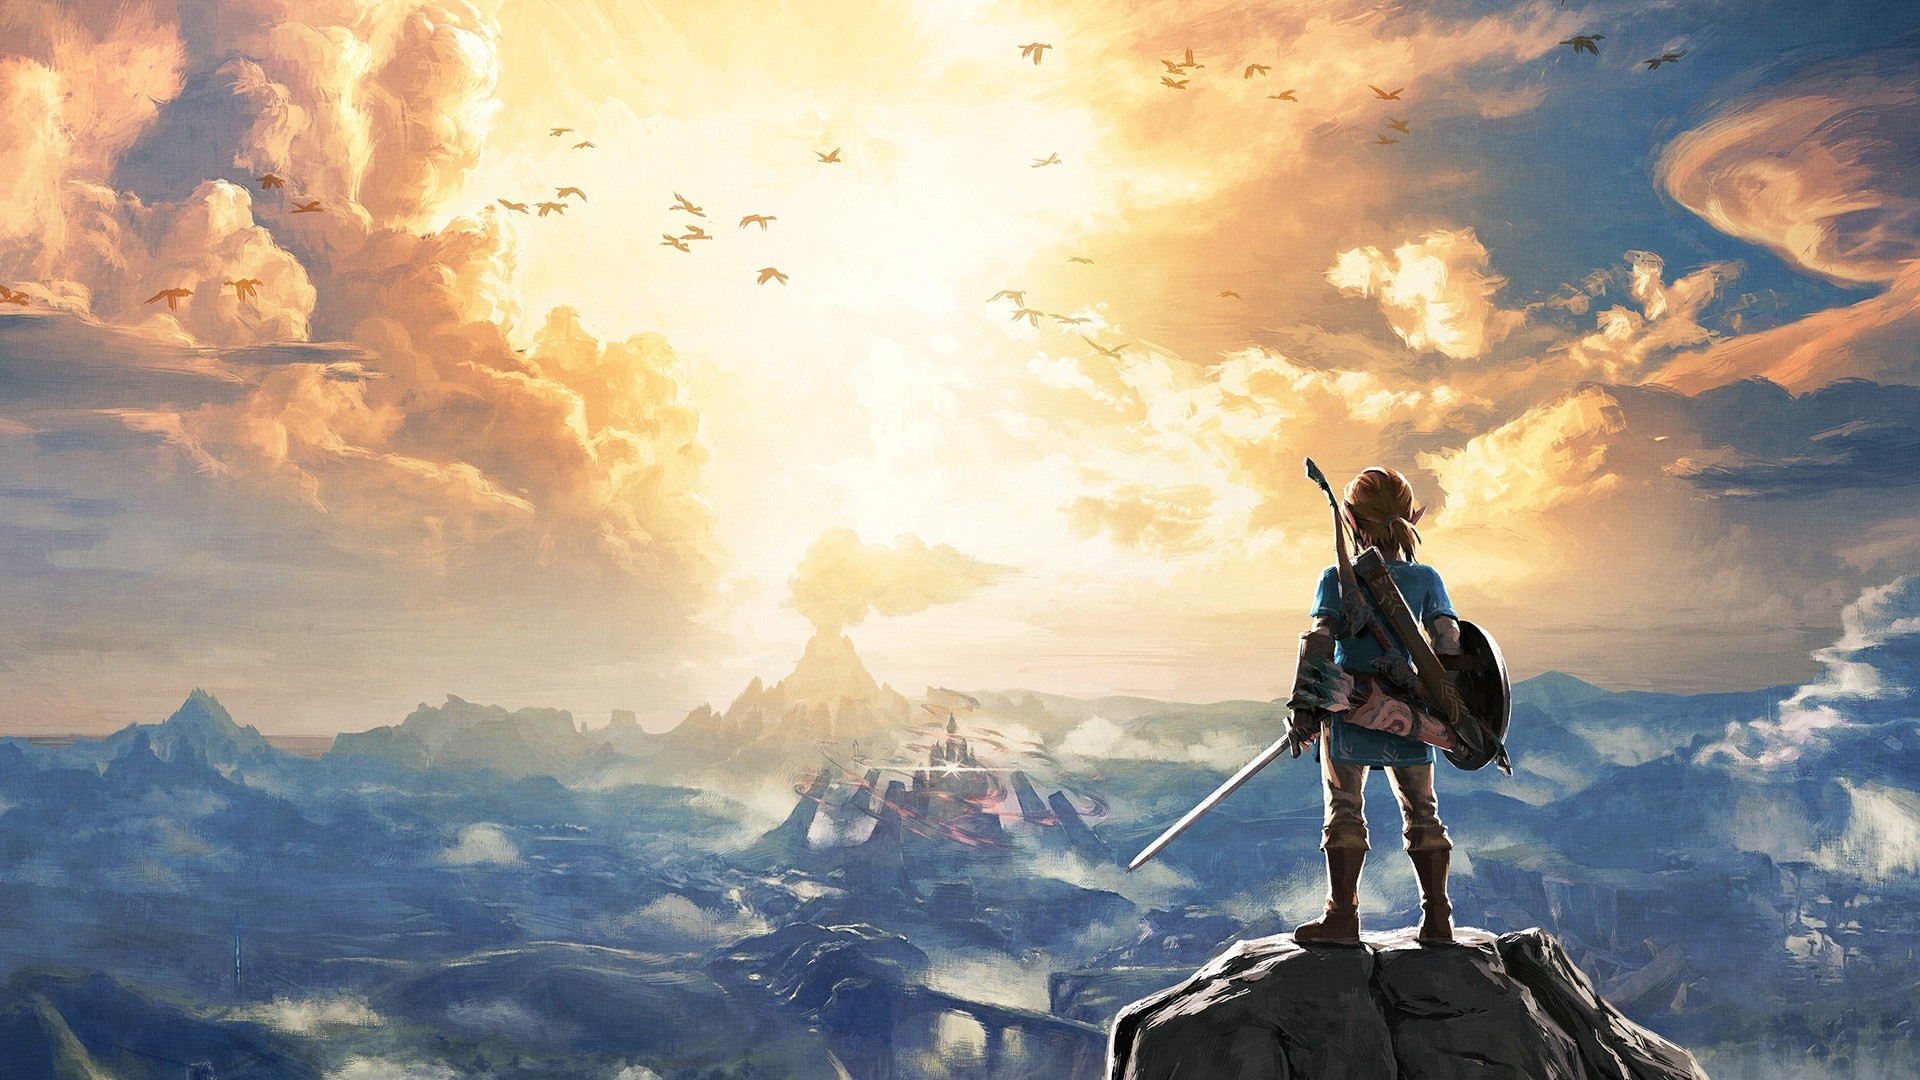 Breath of the Wild wallpaper ·① Download free cool HD ...